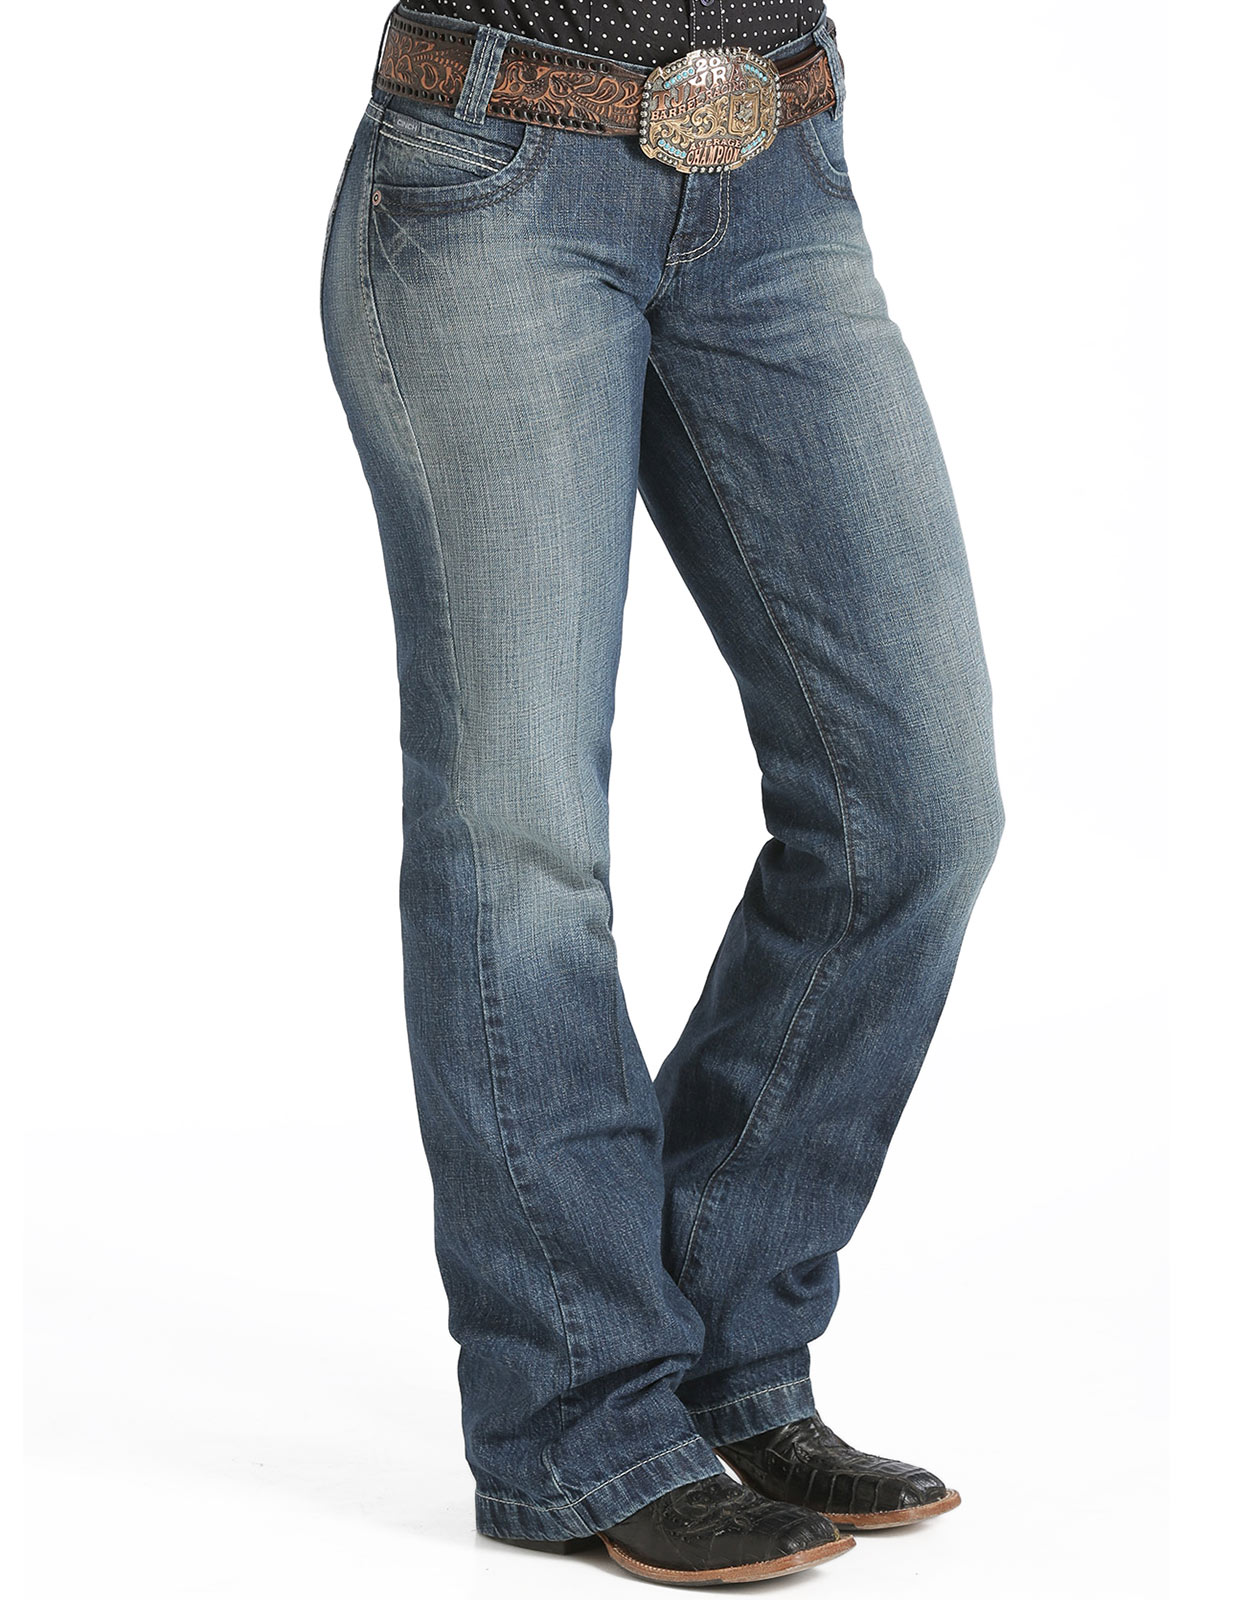 Images of Womens Loose Fit Jeans